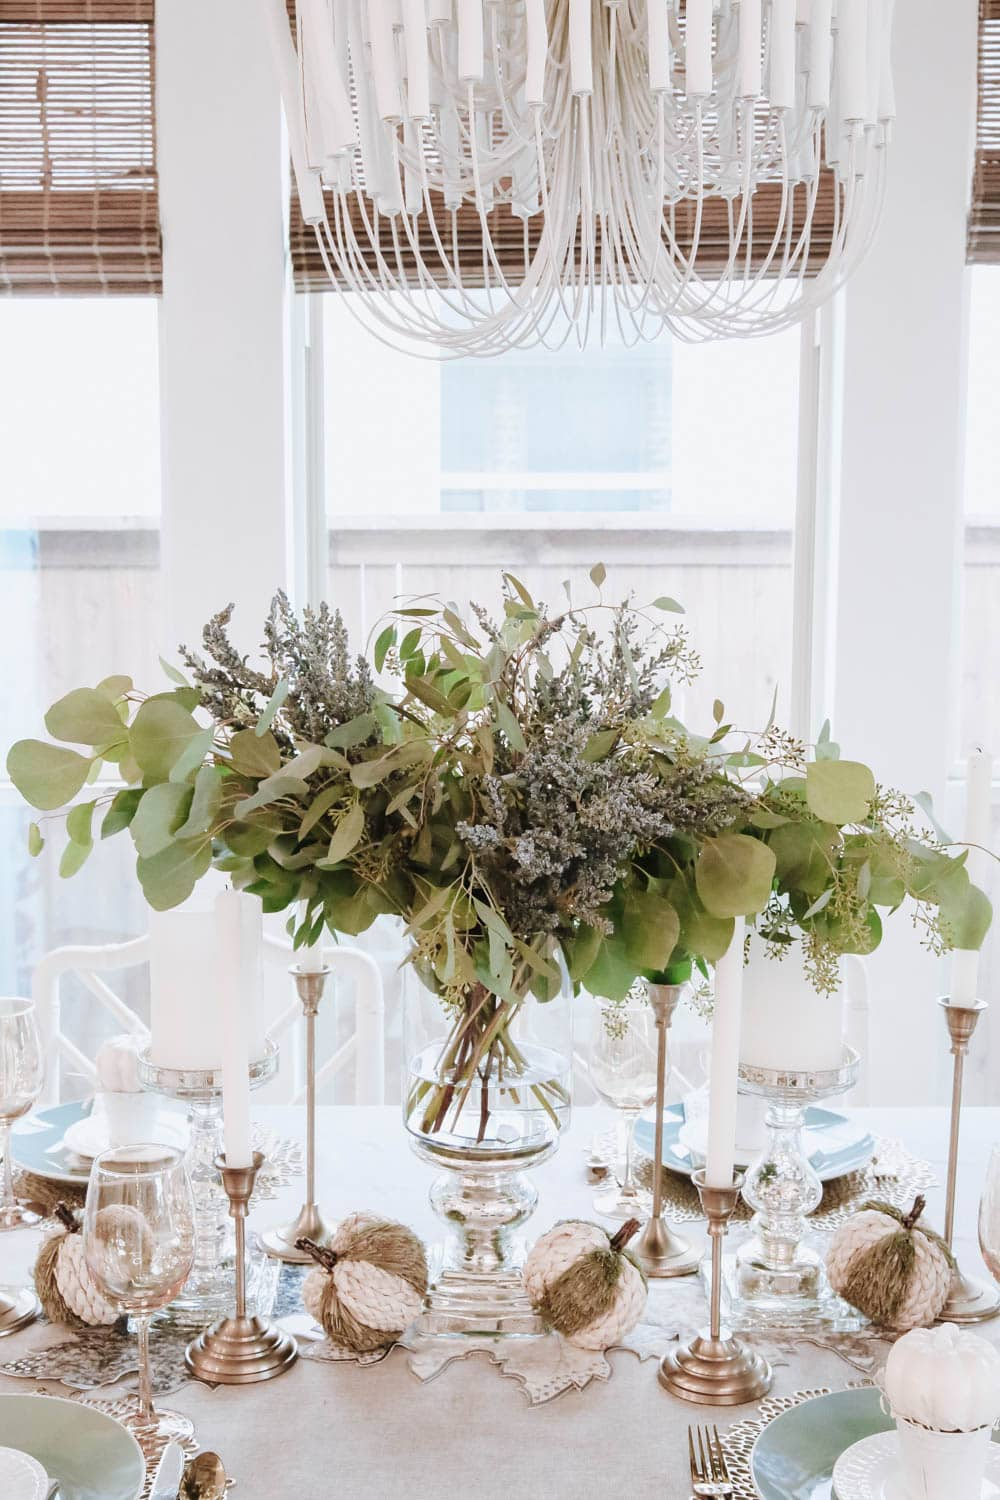 Simple seeded eucalyptus branches in a silver hurricane is beautiful and elegant for this fall table. #ABlissfulNest #thanksgiving #falldecor